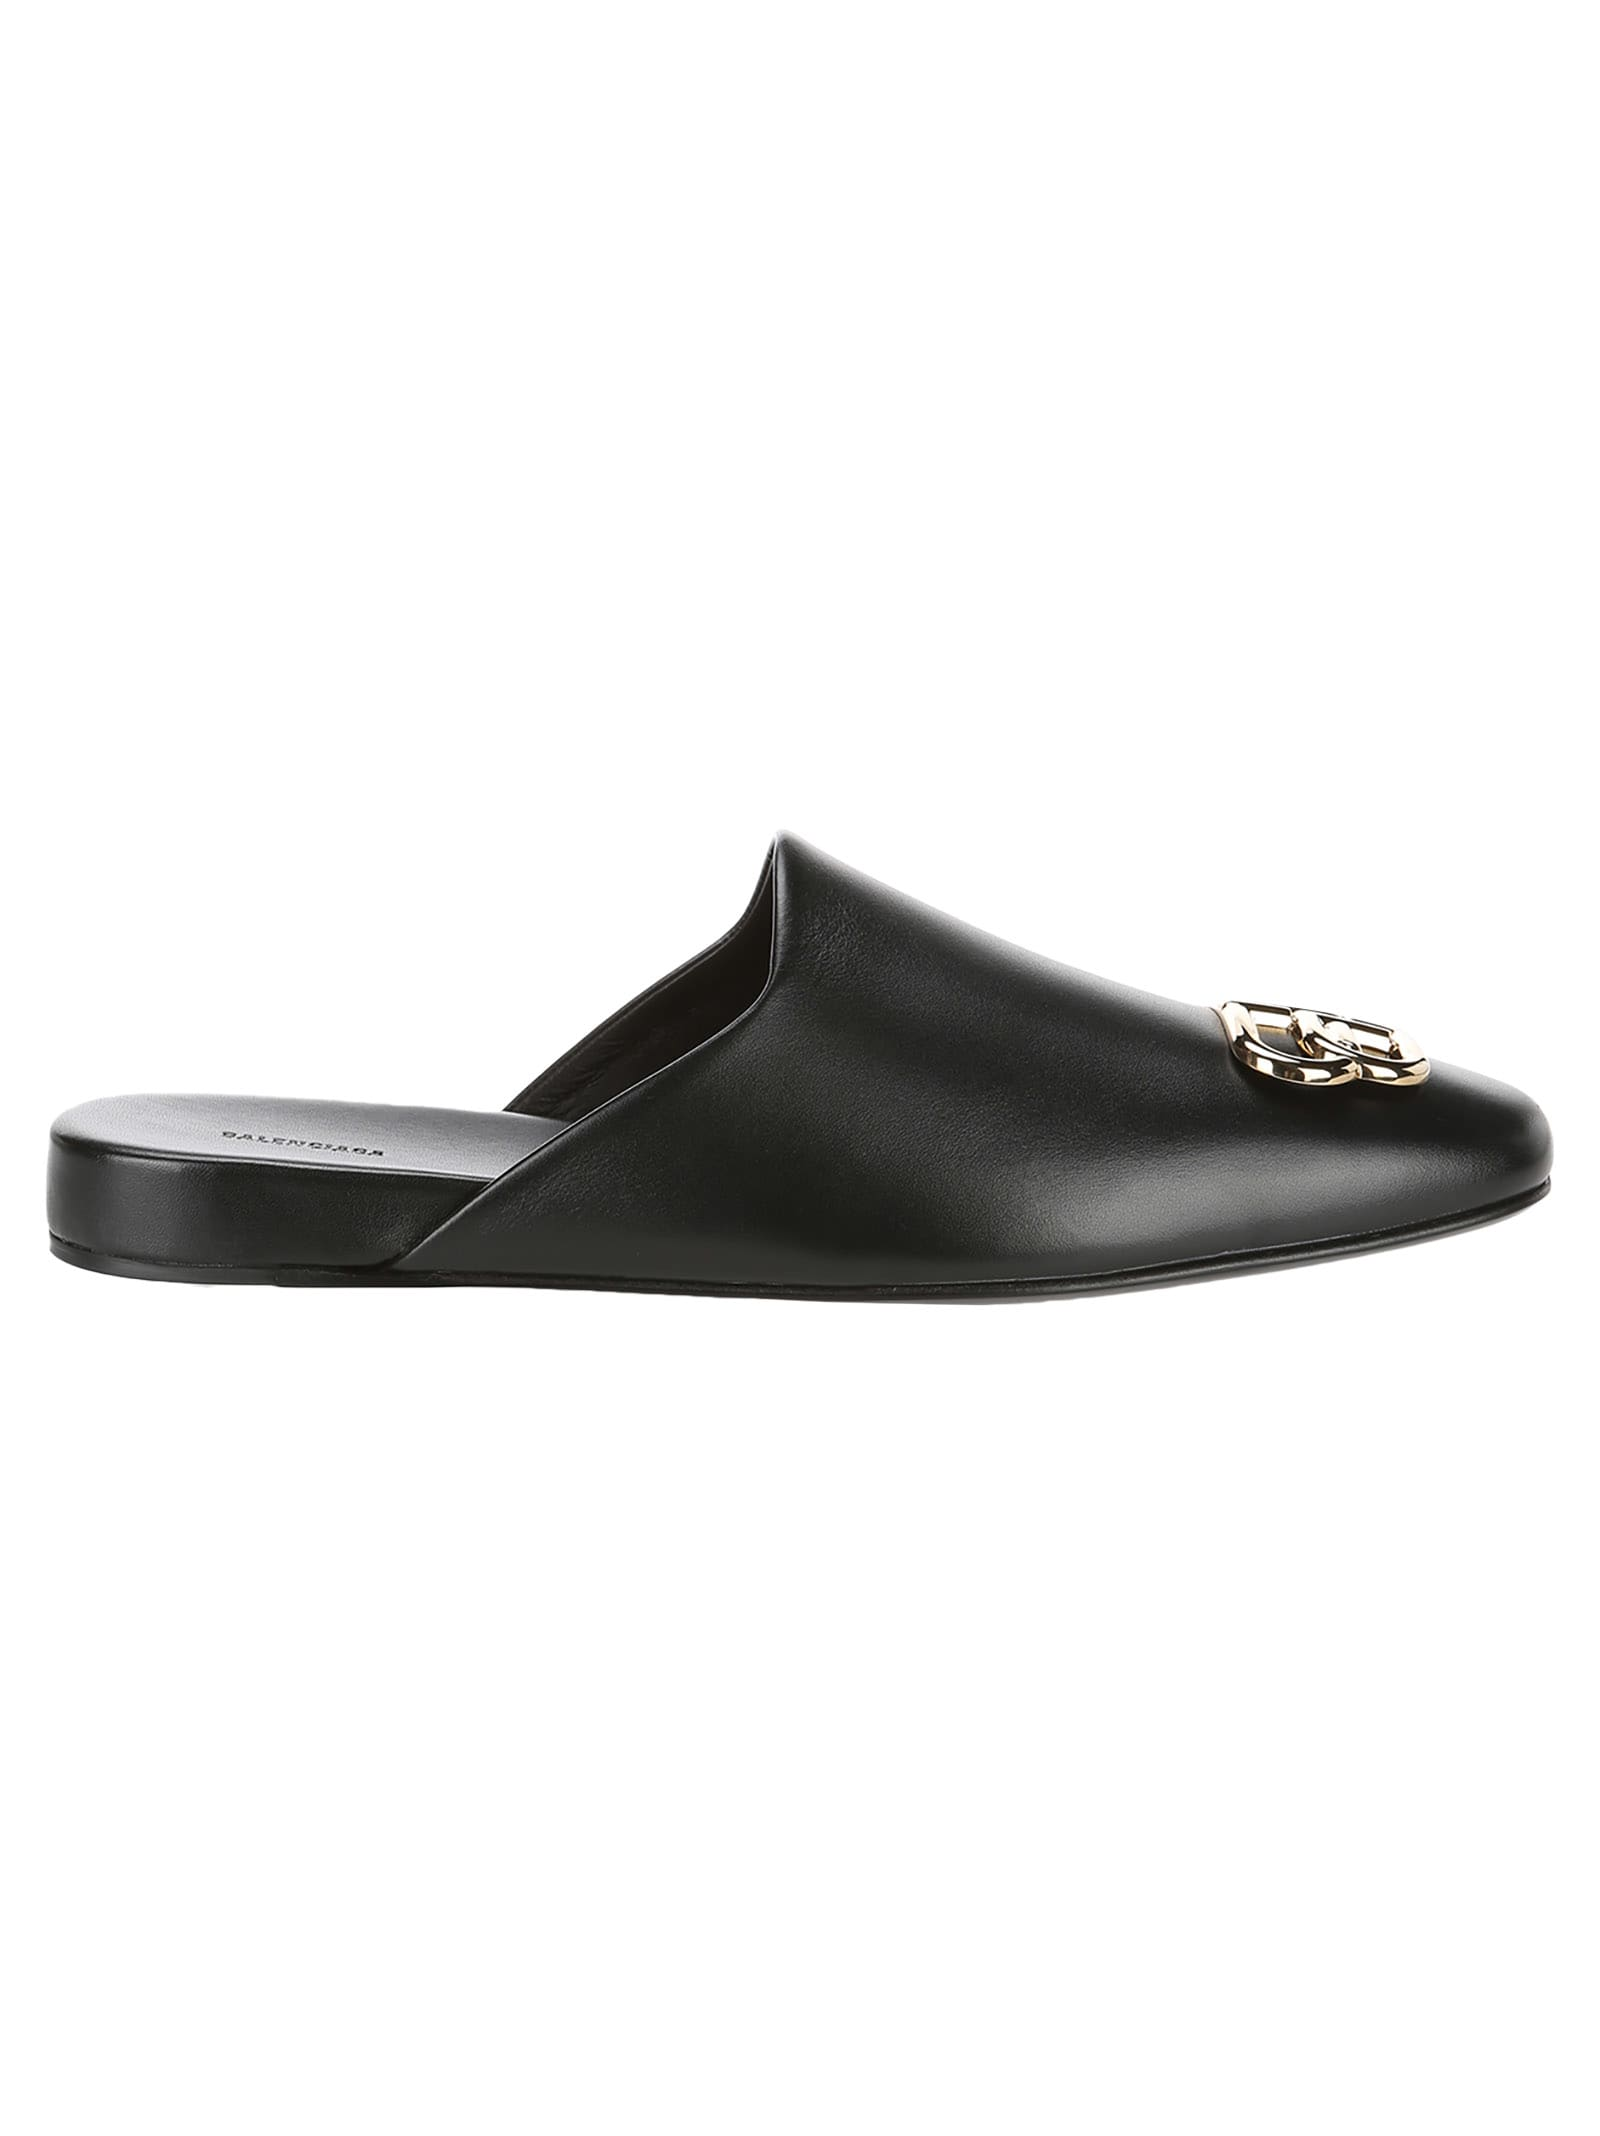 100% quality buy best cheap prices Balenciaga Cosy Bb Mules